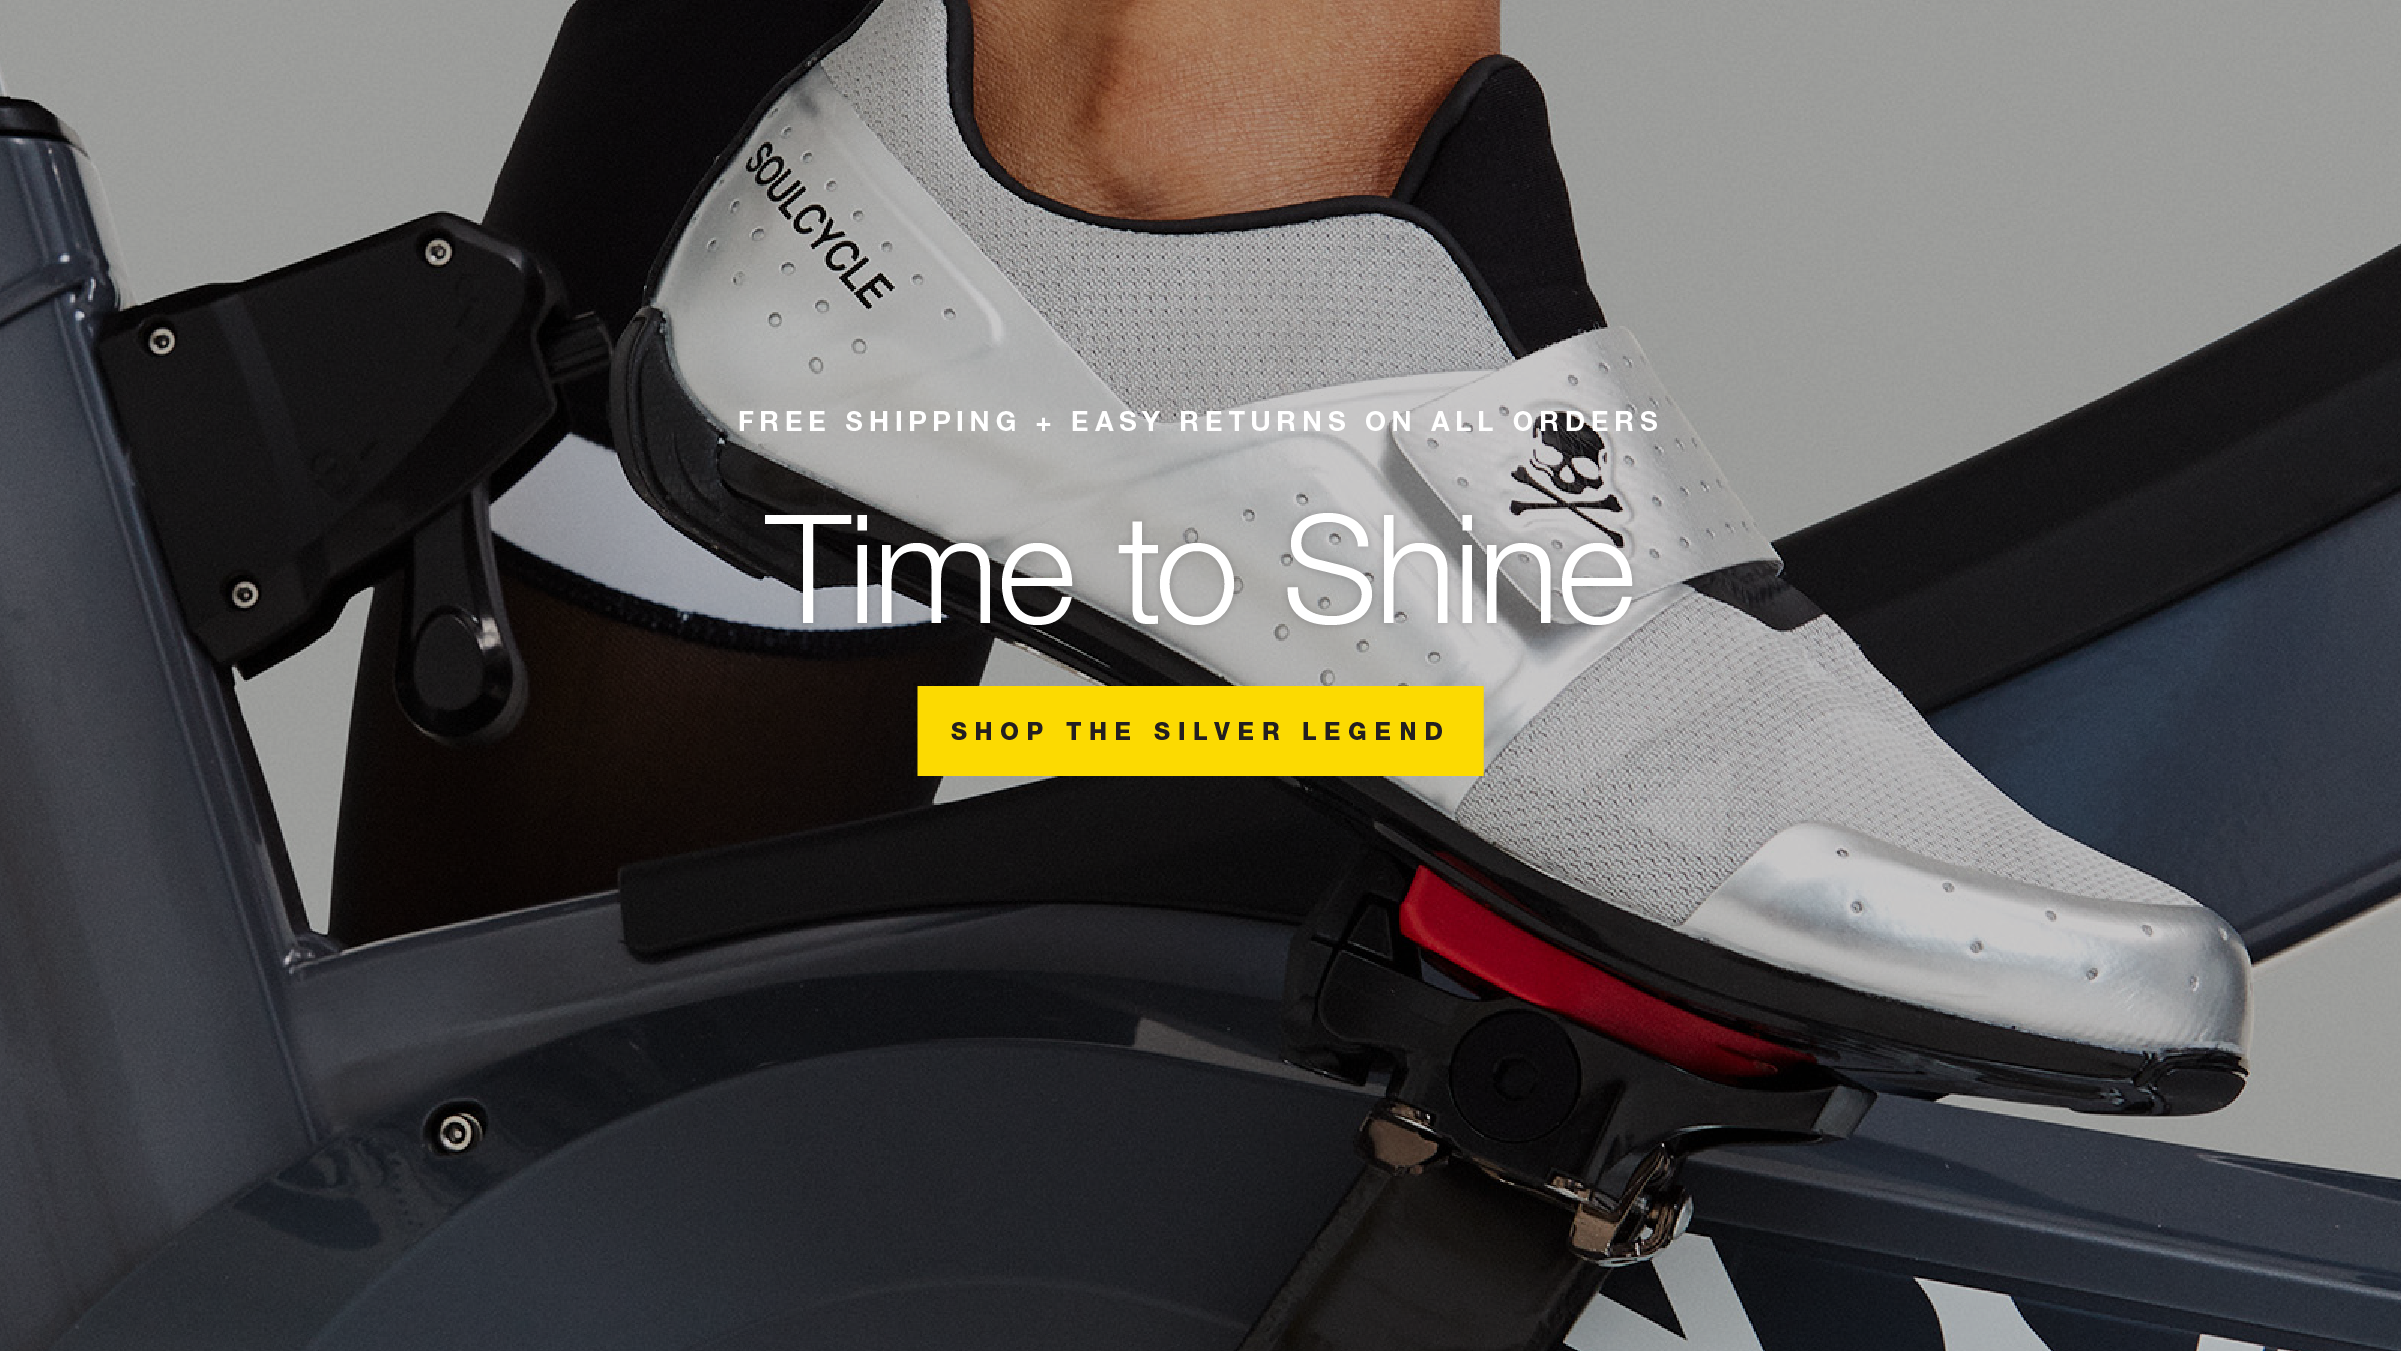 Launch of Silver Legend Cycling Shoe - Retail